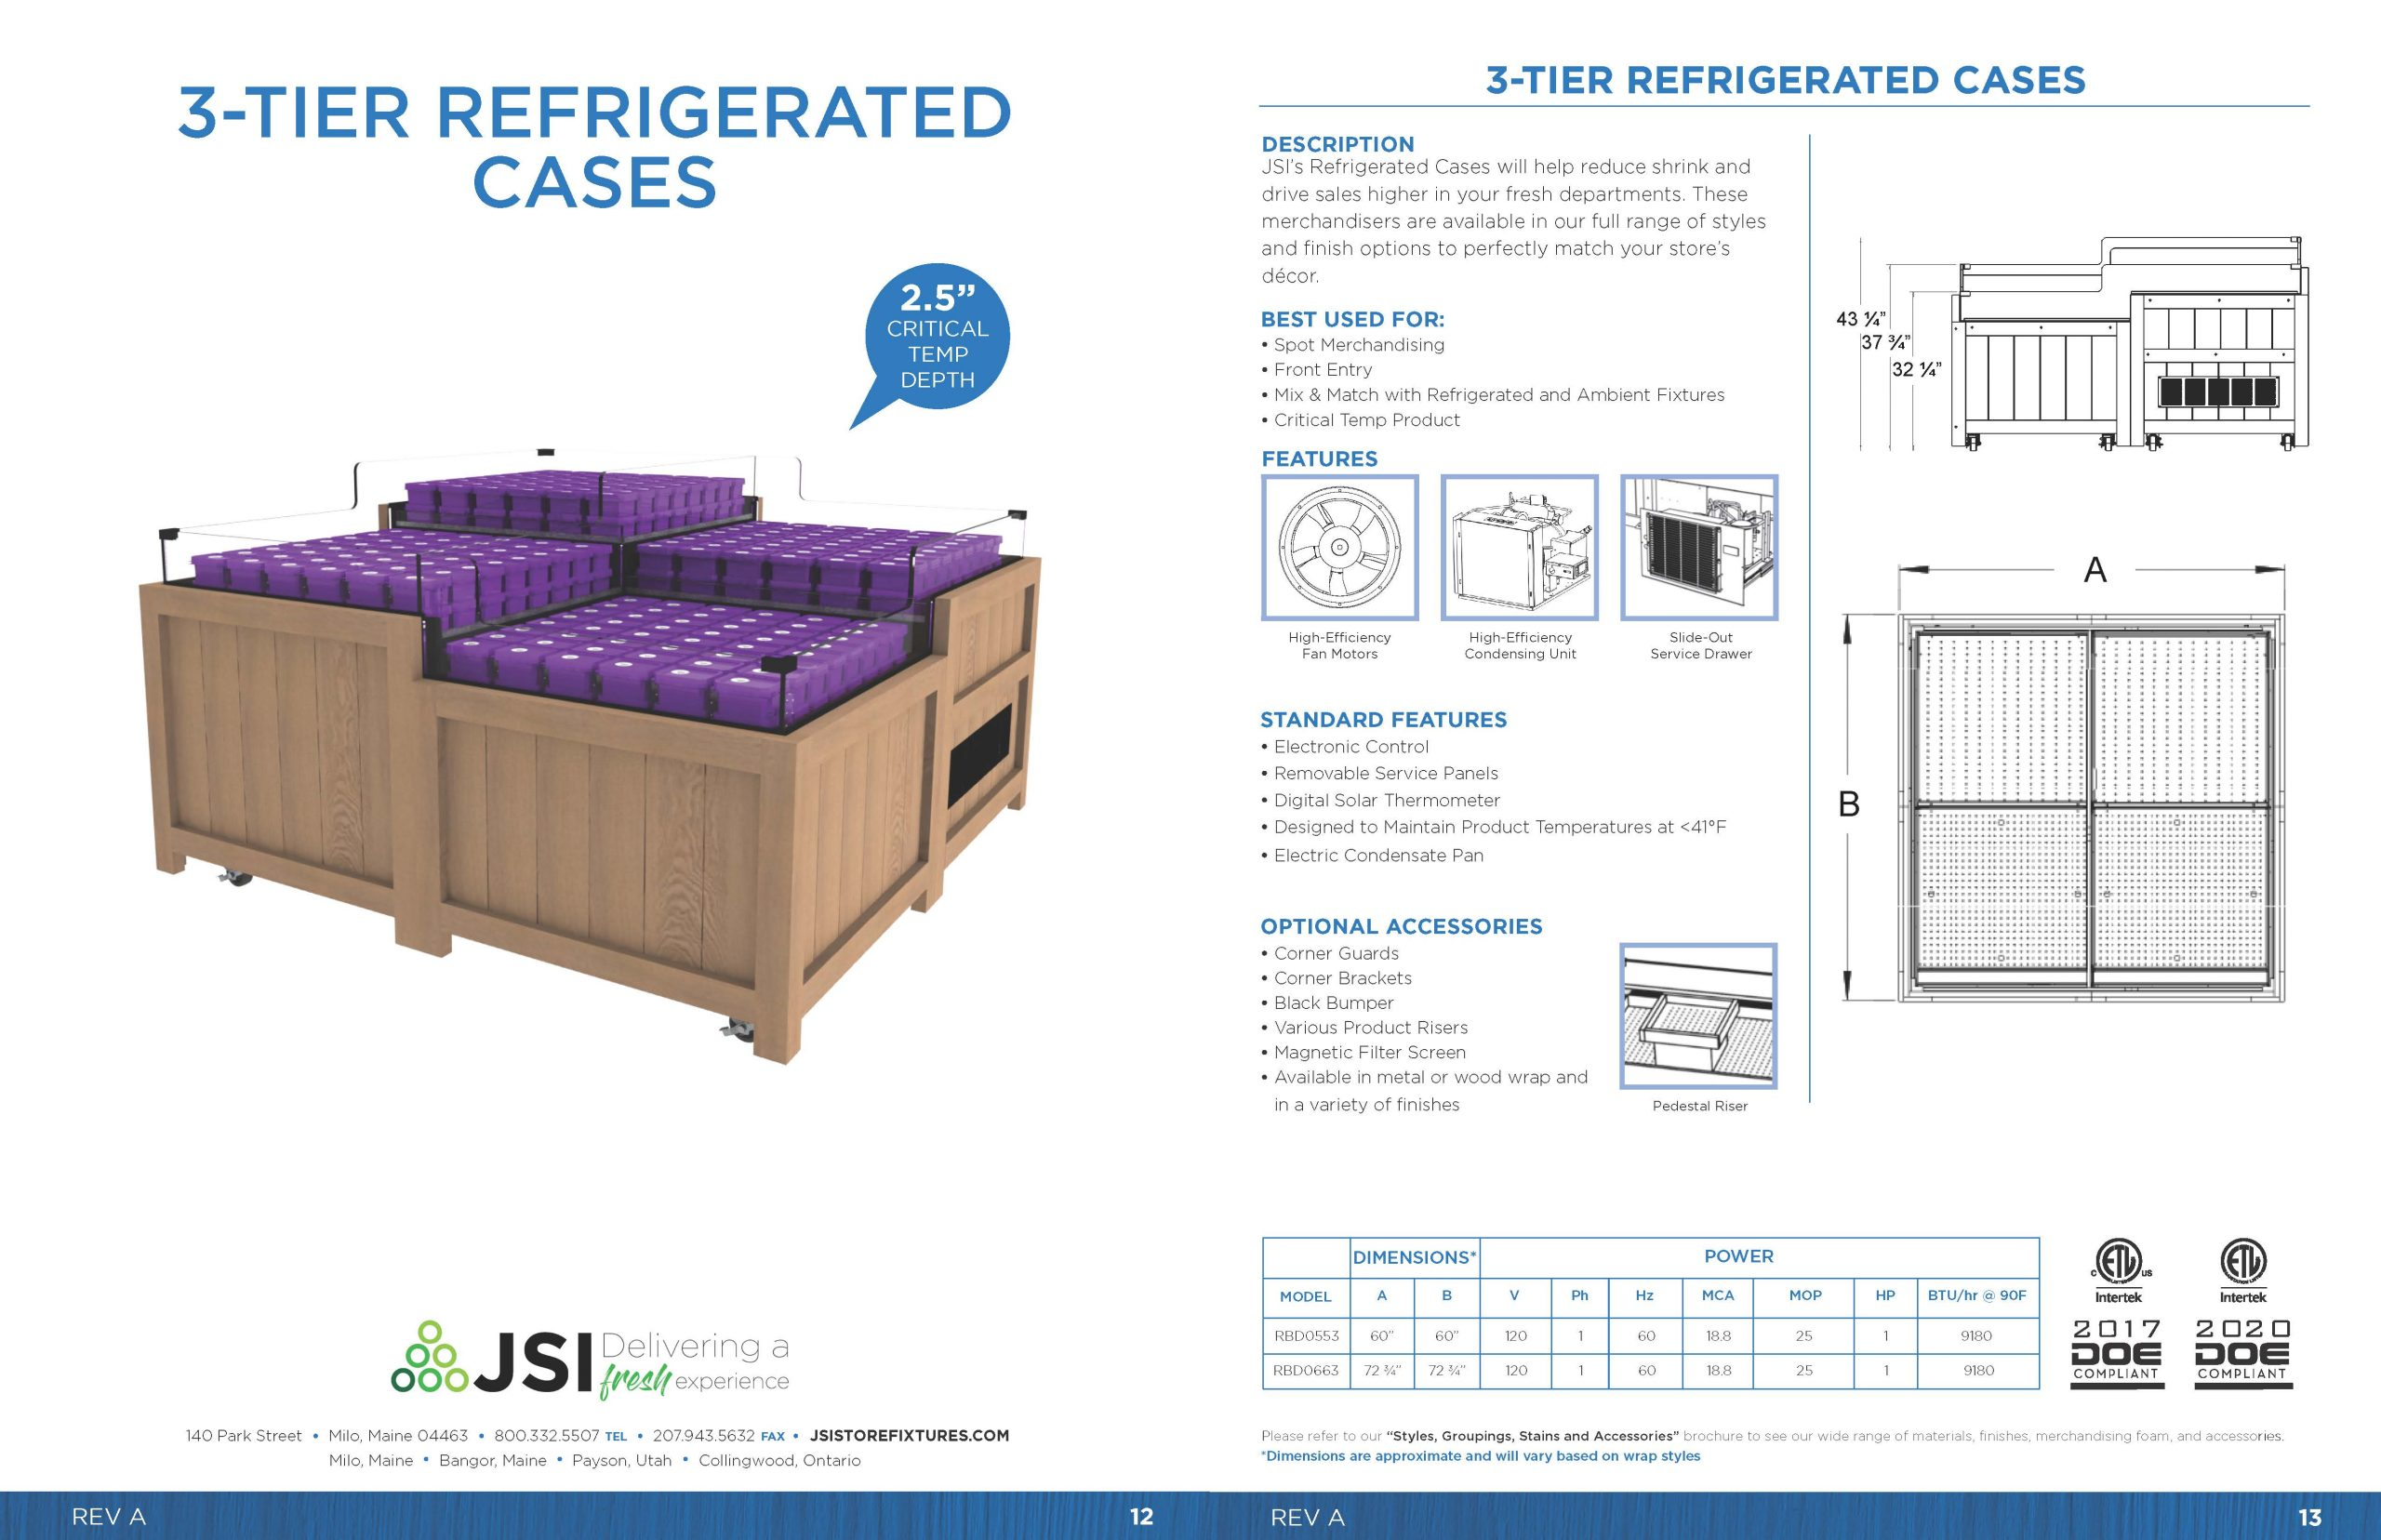 3-Tier Refrigerated Cases